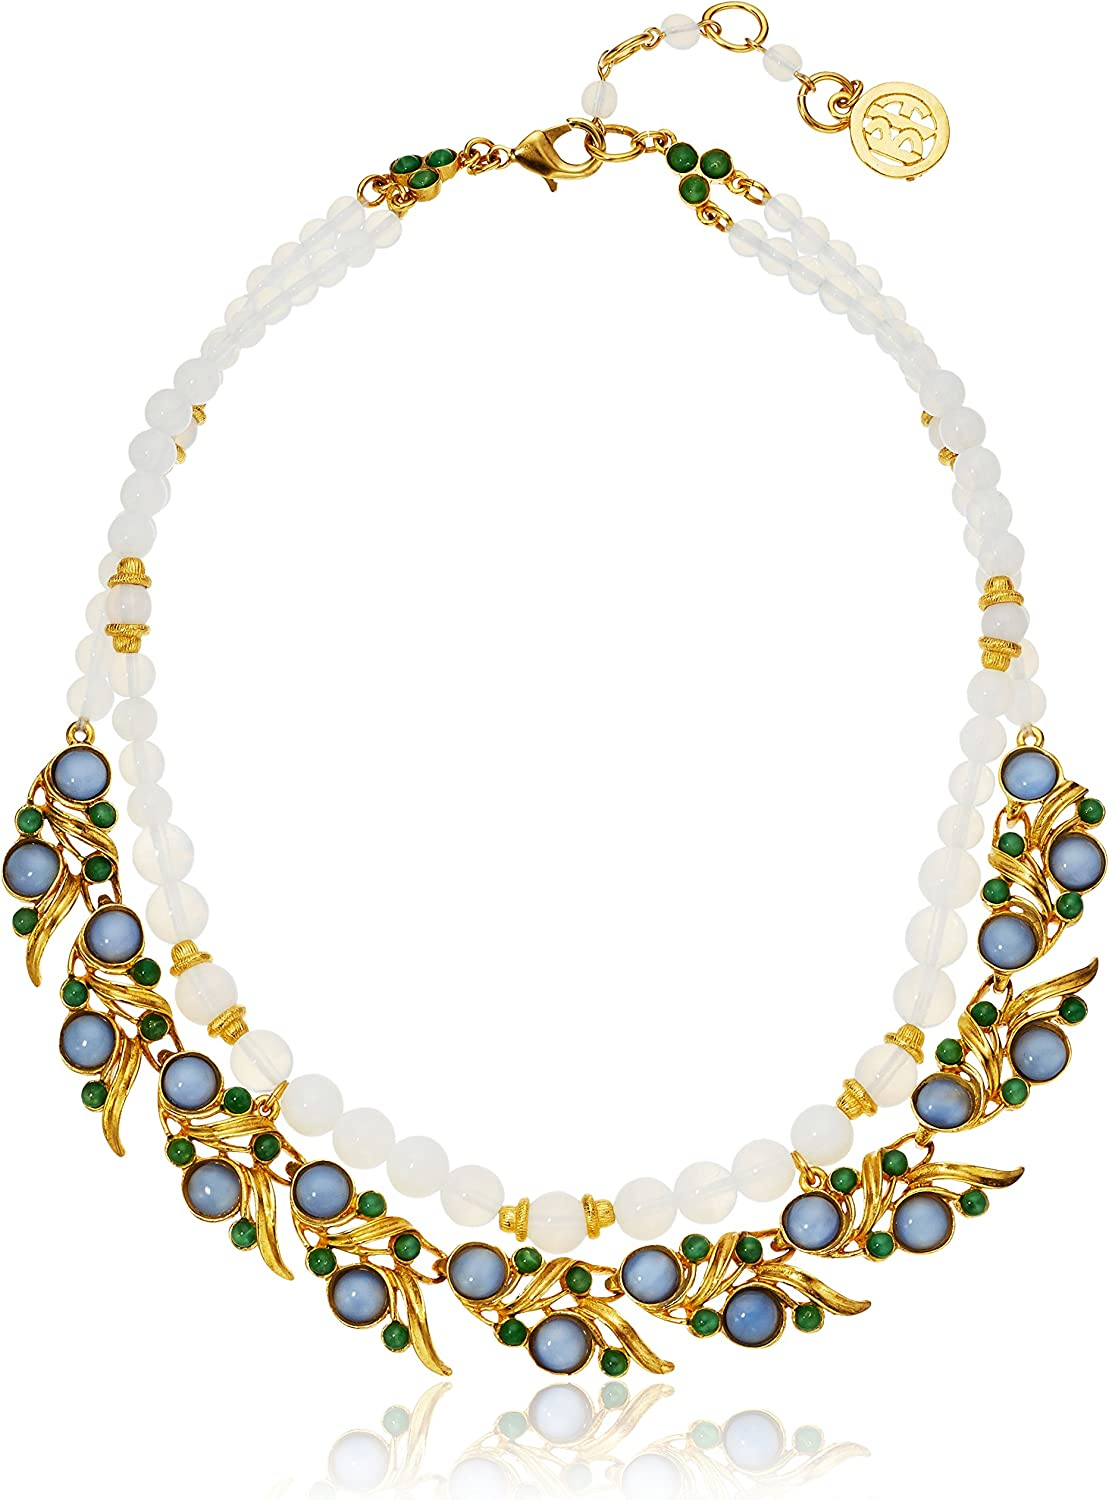 Ben-Amun Jewelry Row Moon Bead with Gold Leaf Links Strand Necklace, 15